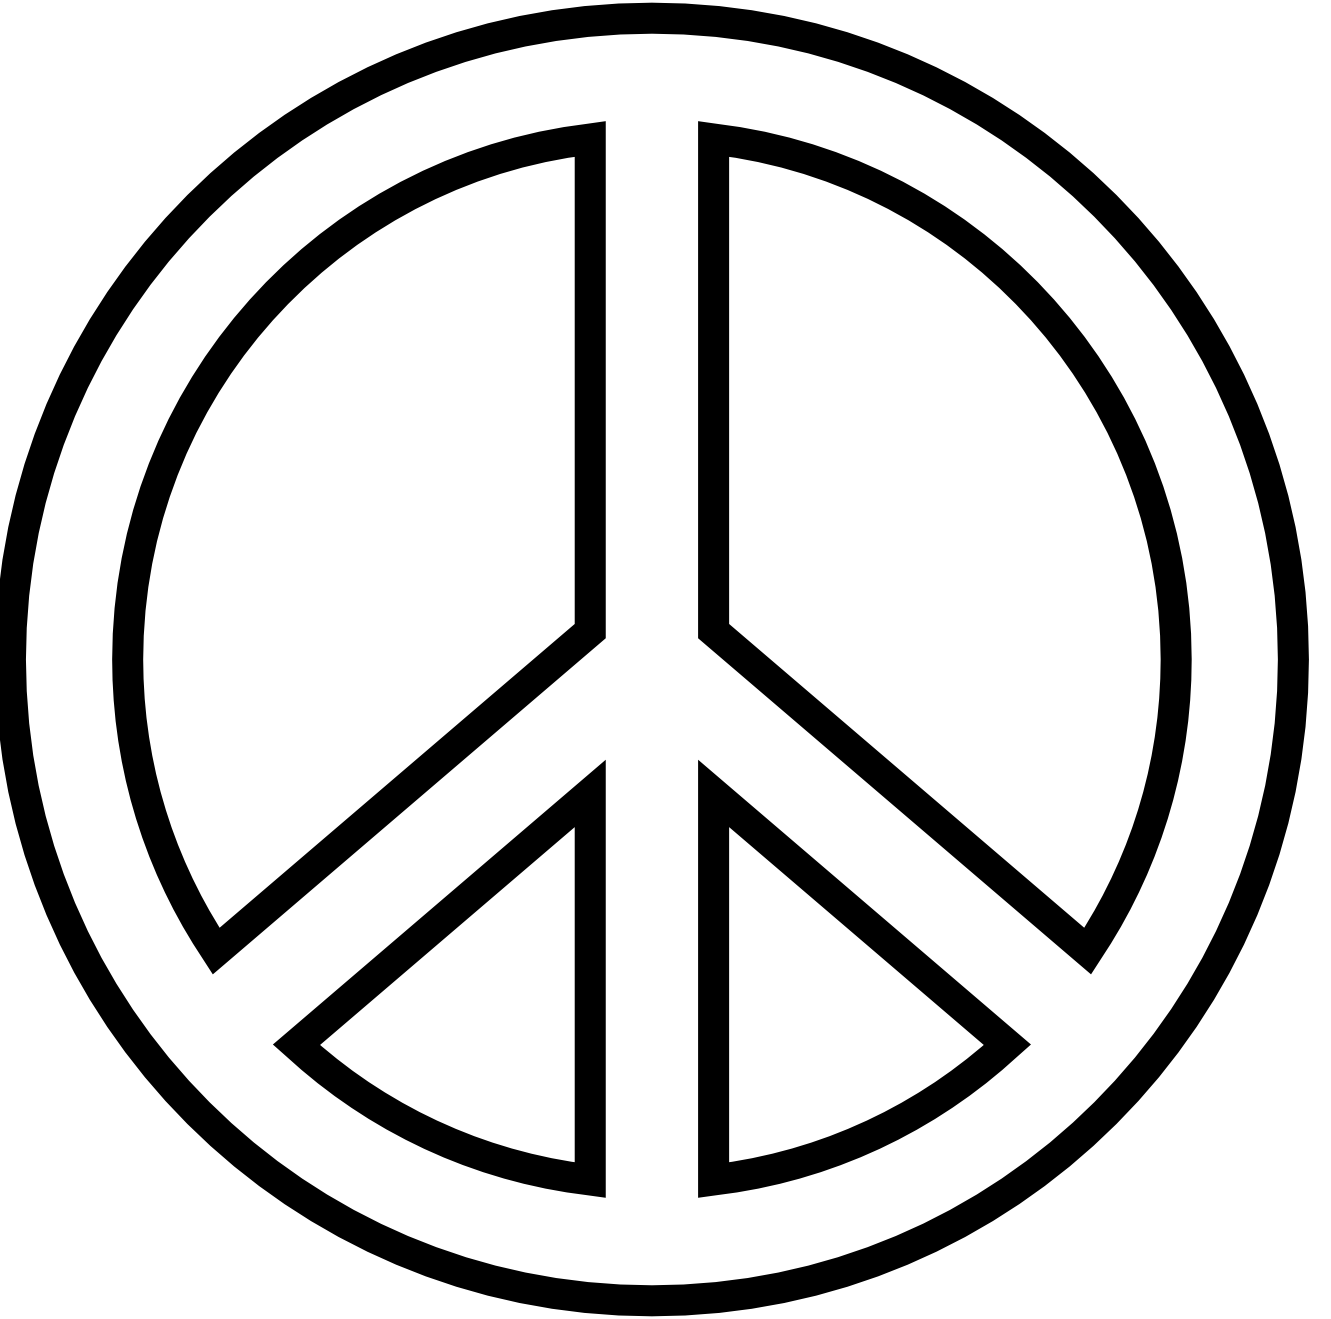 peace peace symbol coloring pages - Peace Coloring Pages